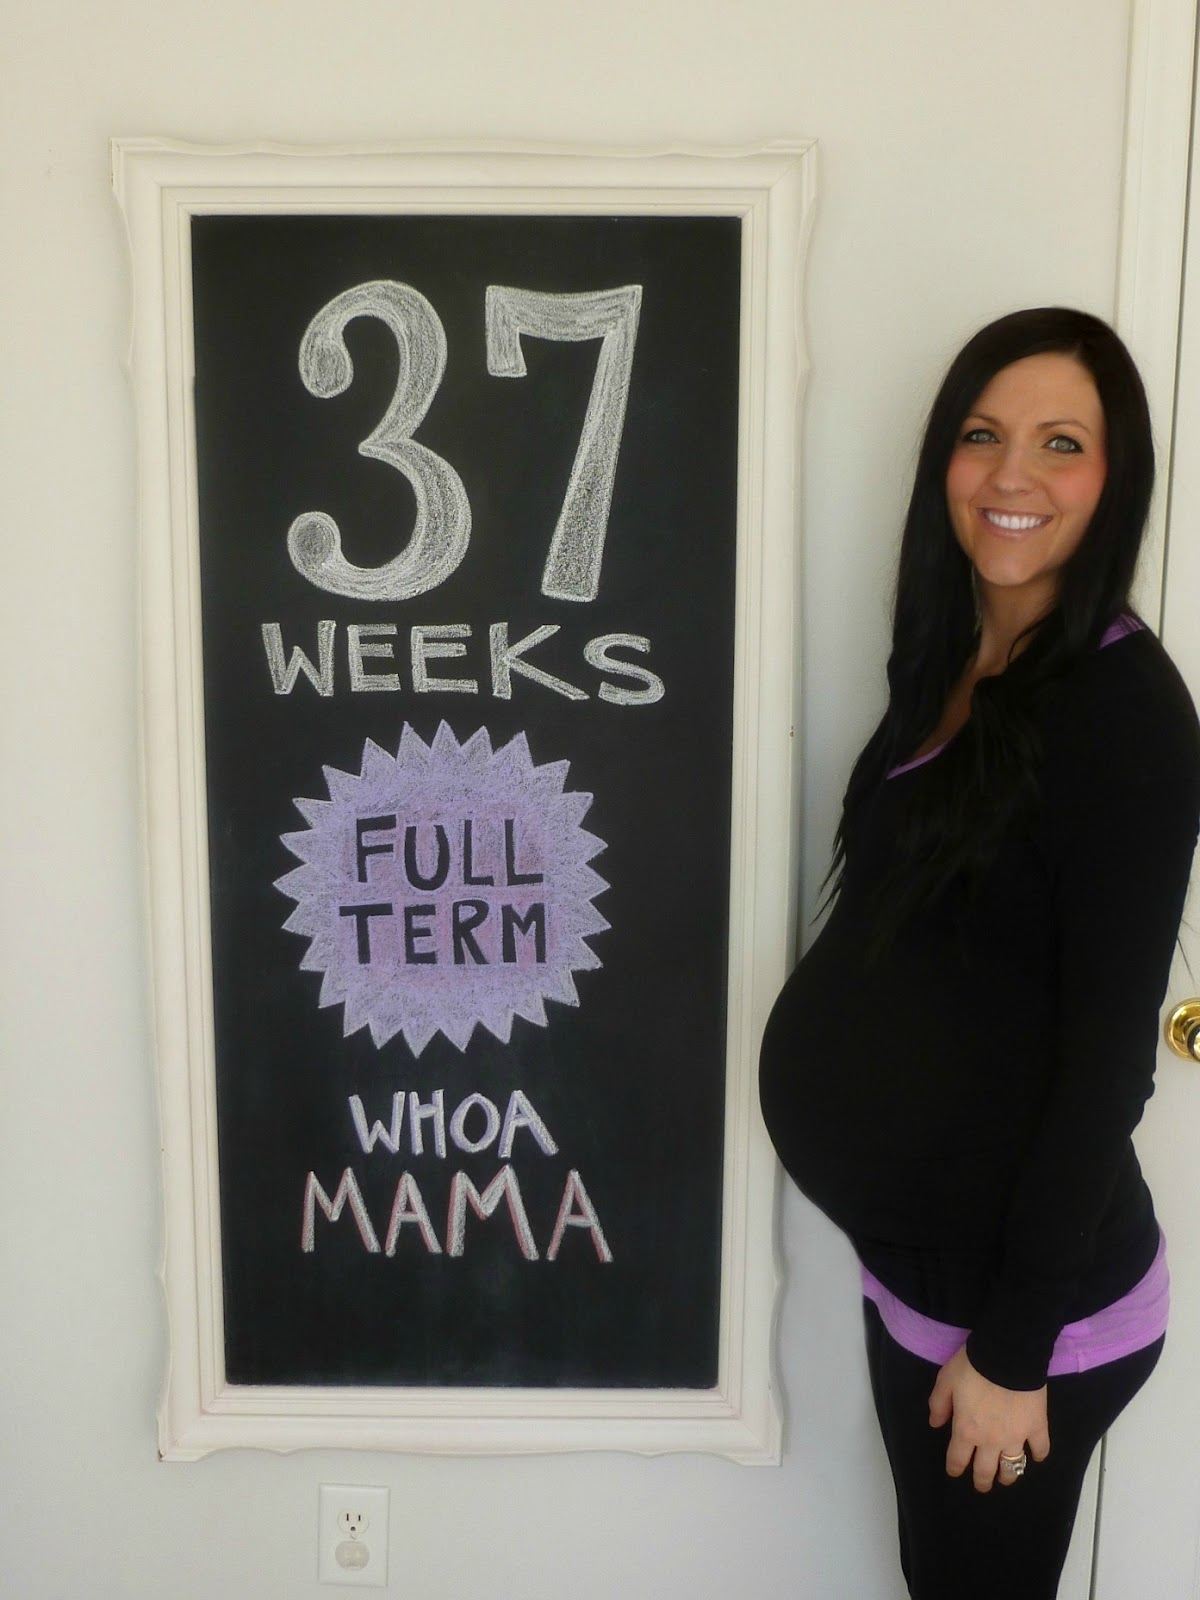 39 weeks pregnant stomach acid